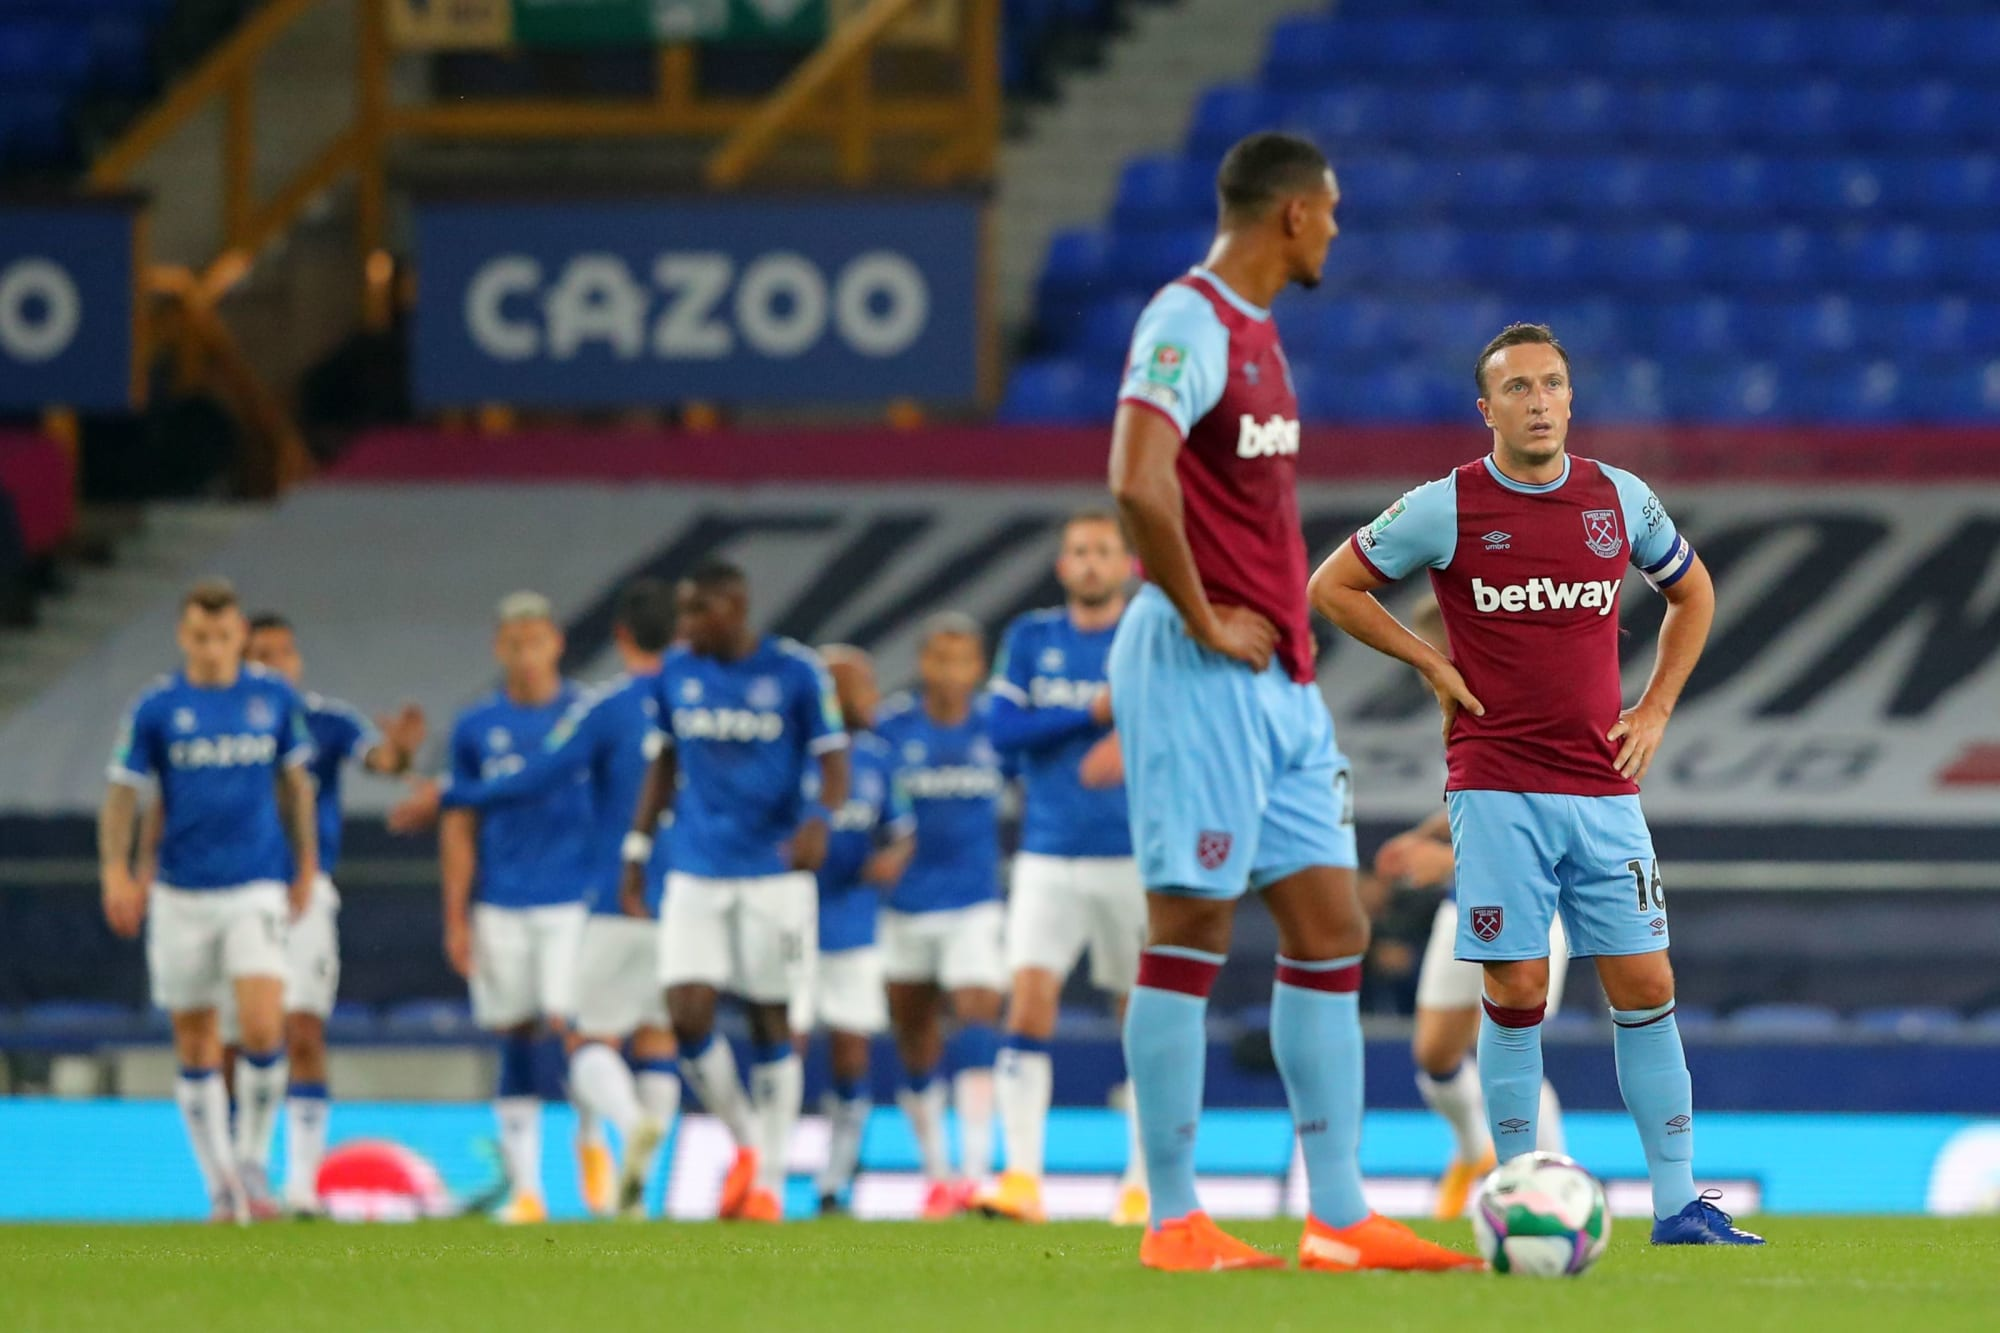 West Ham crash out of Carabao Cup at the hands of Everton